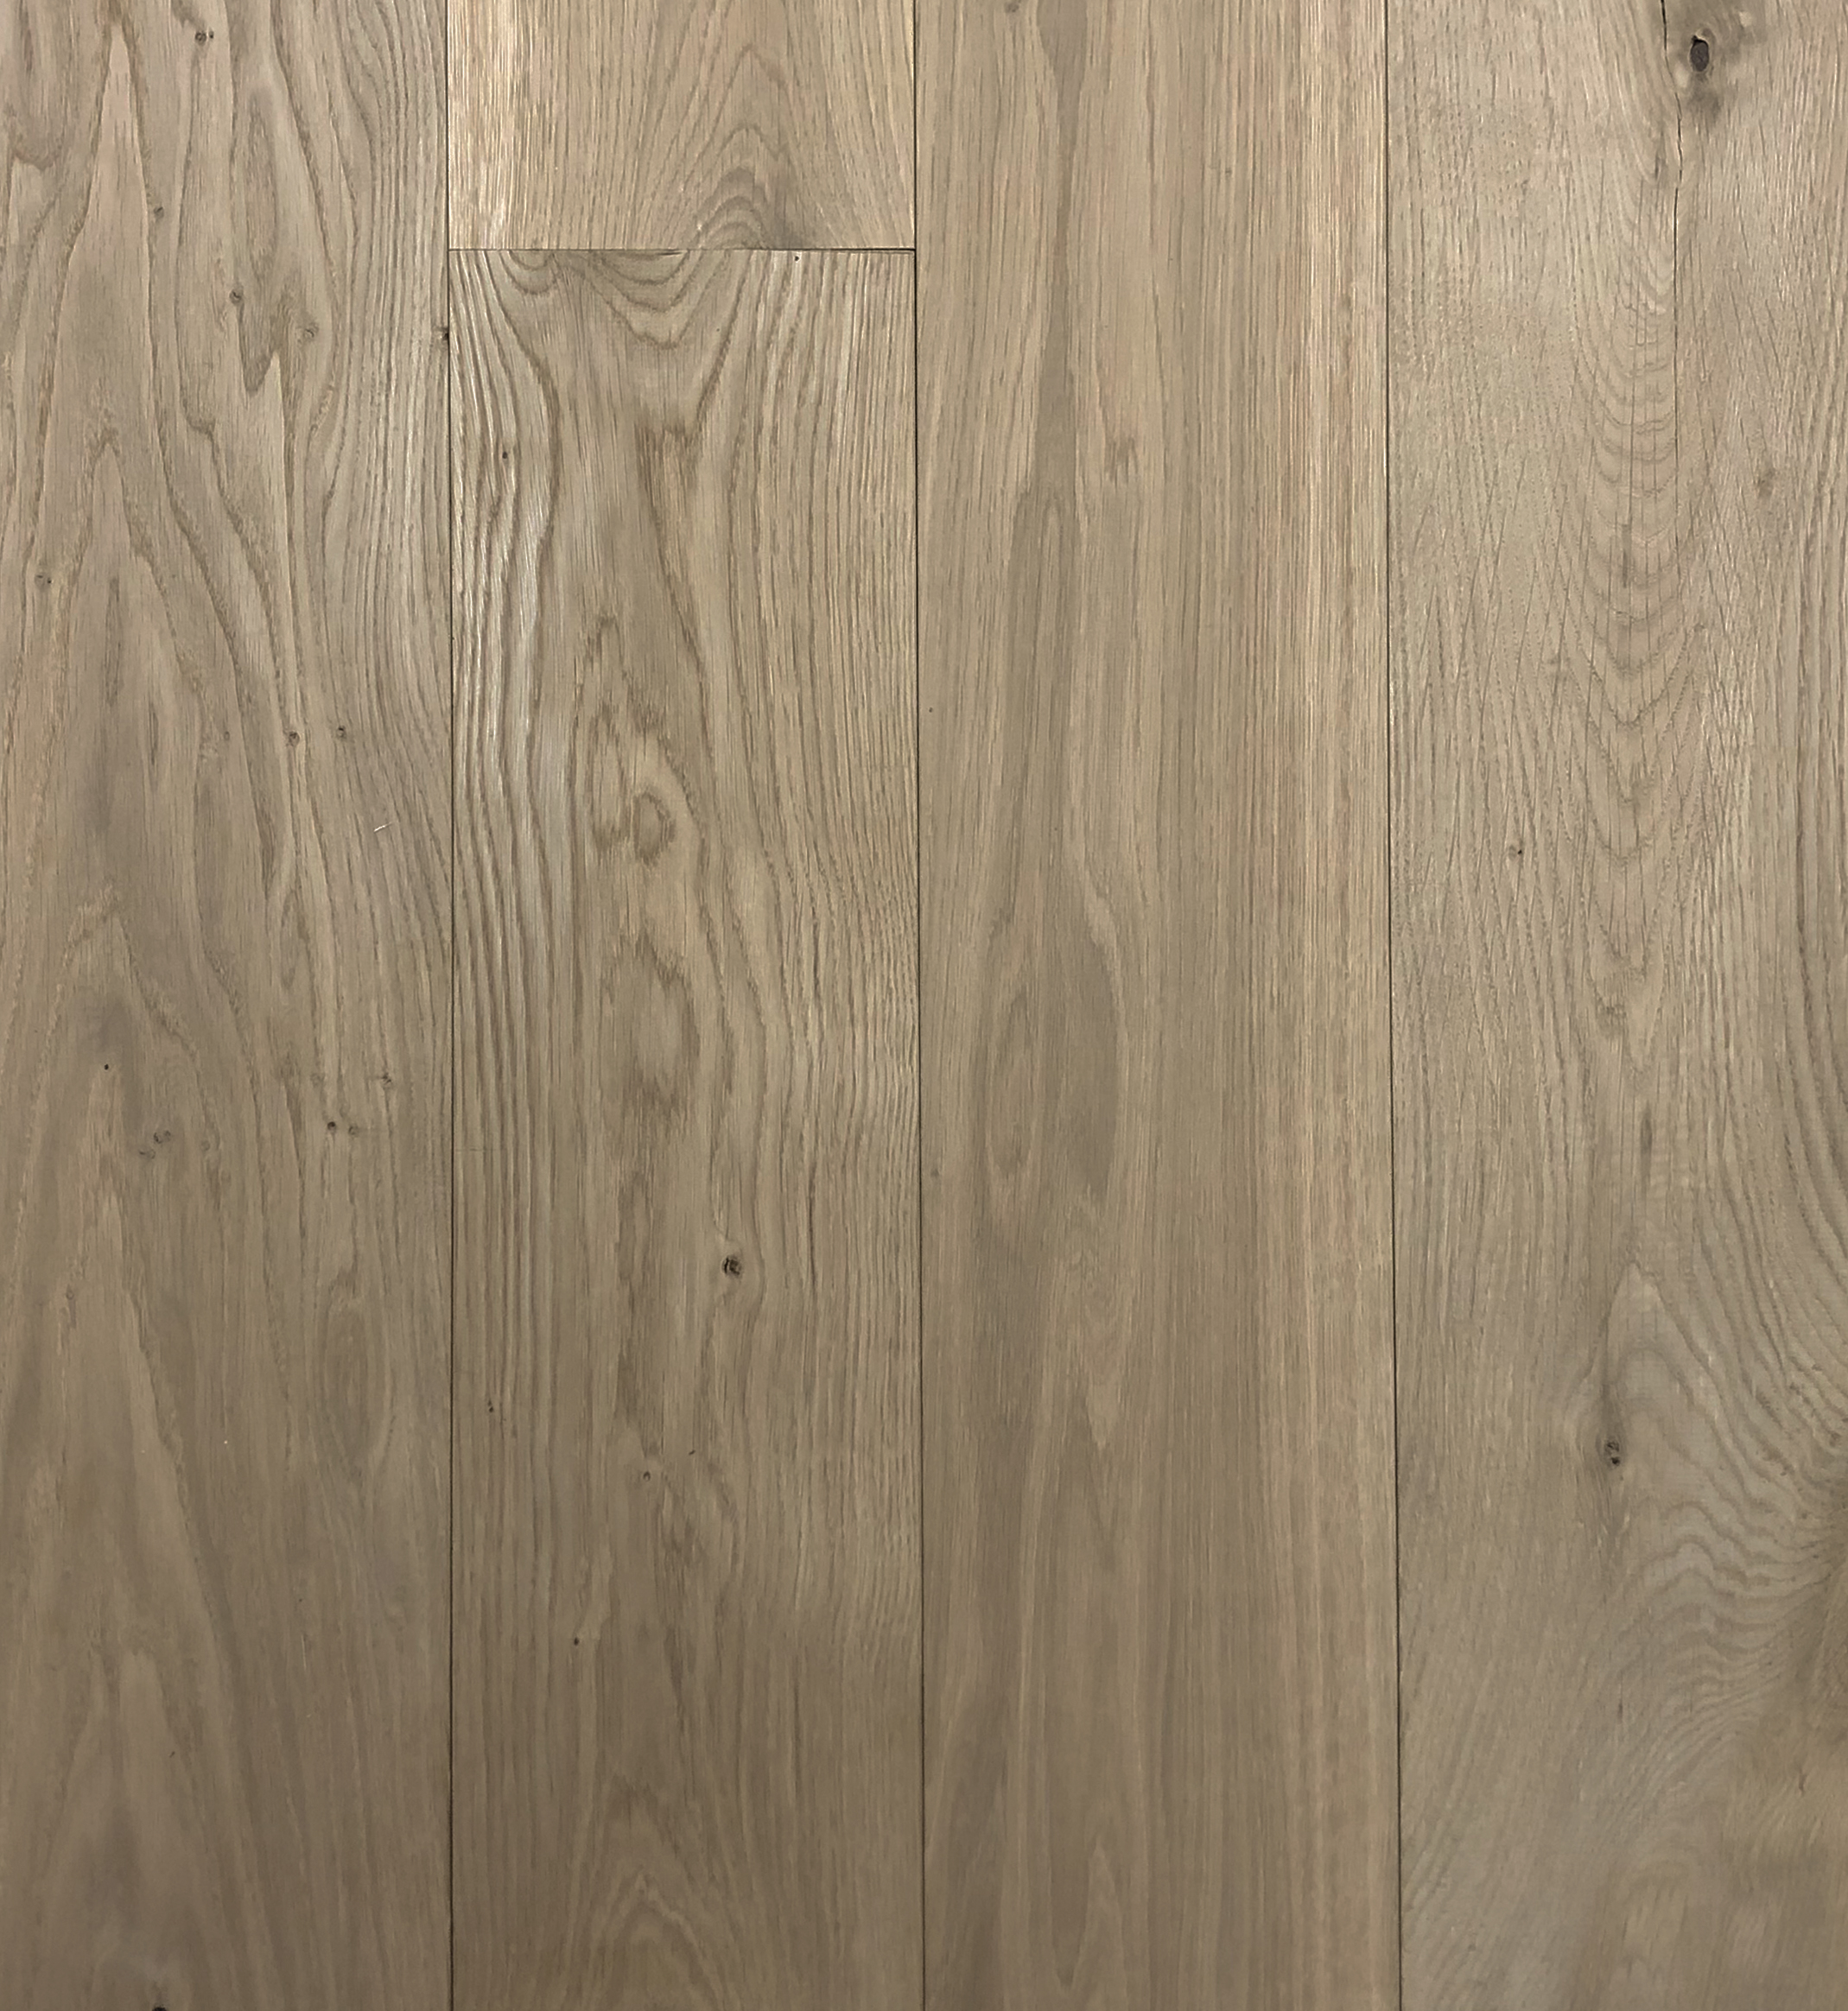 Pioneer Millworks Modern Farmhouse Flooring and Paneling, Casual White Oak in Naked